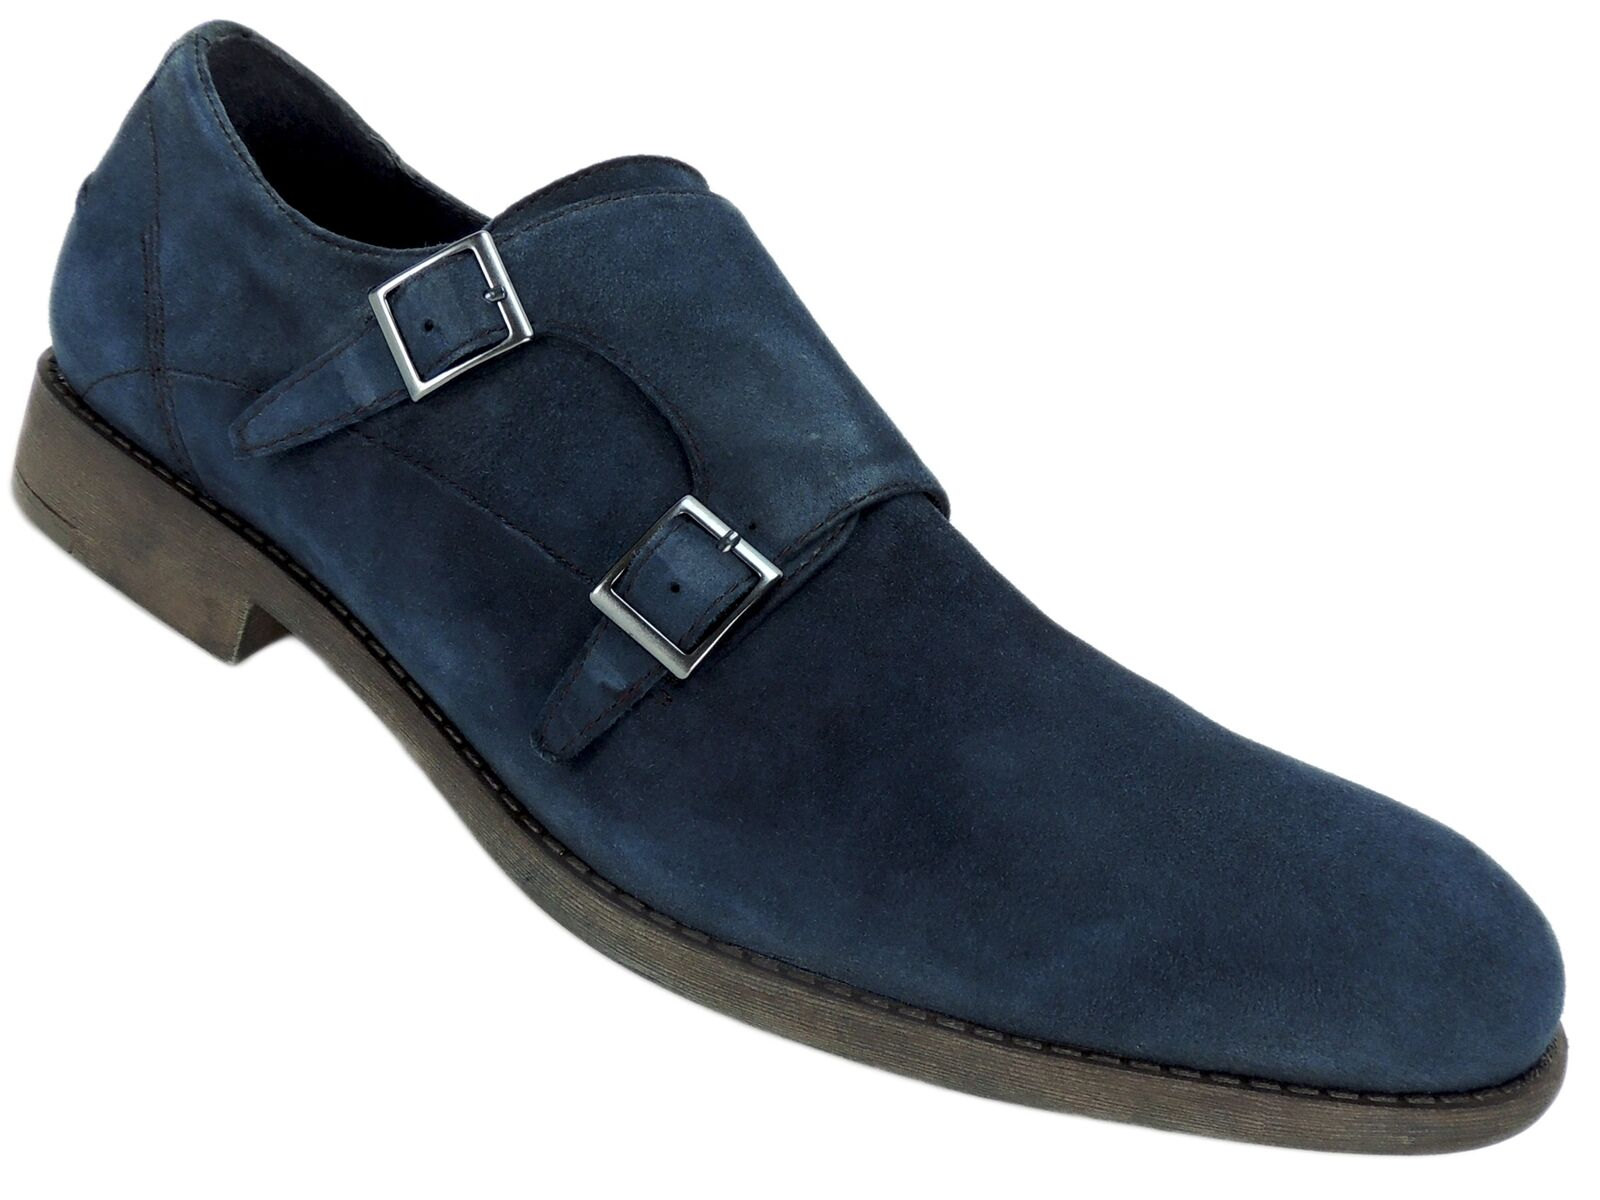 Kenneth Cole Reaction Men's Design 20644 Monk-Strap Loafers Navy Suede Size 13 M